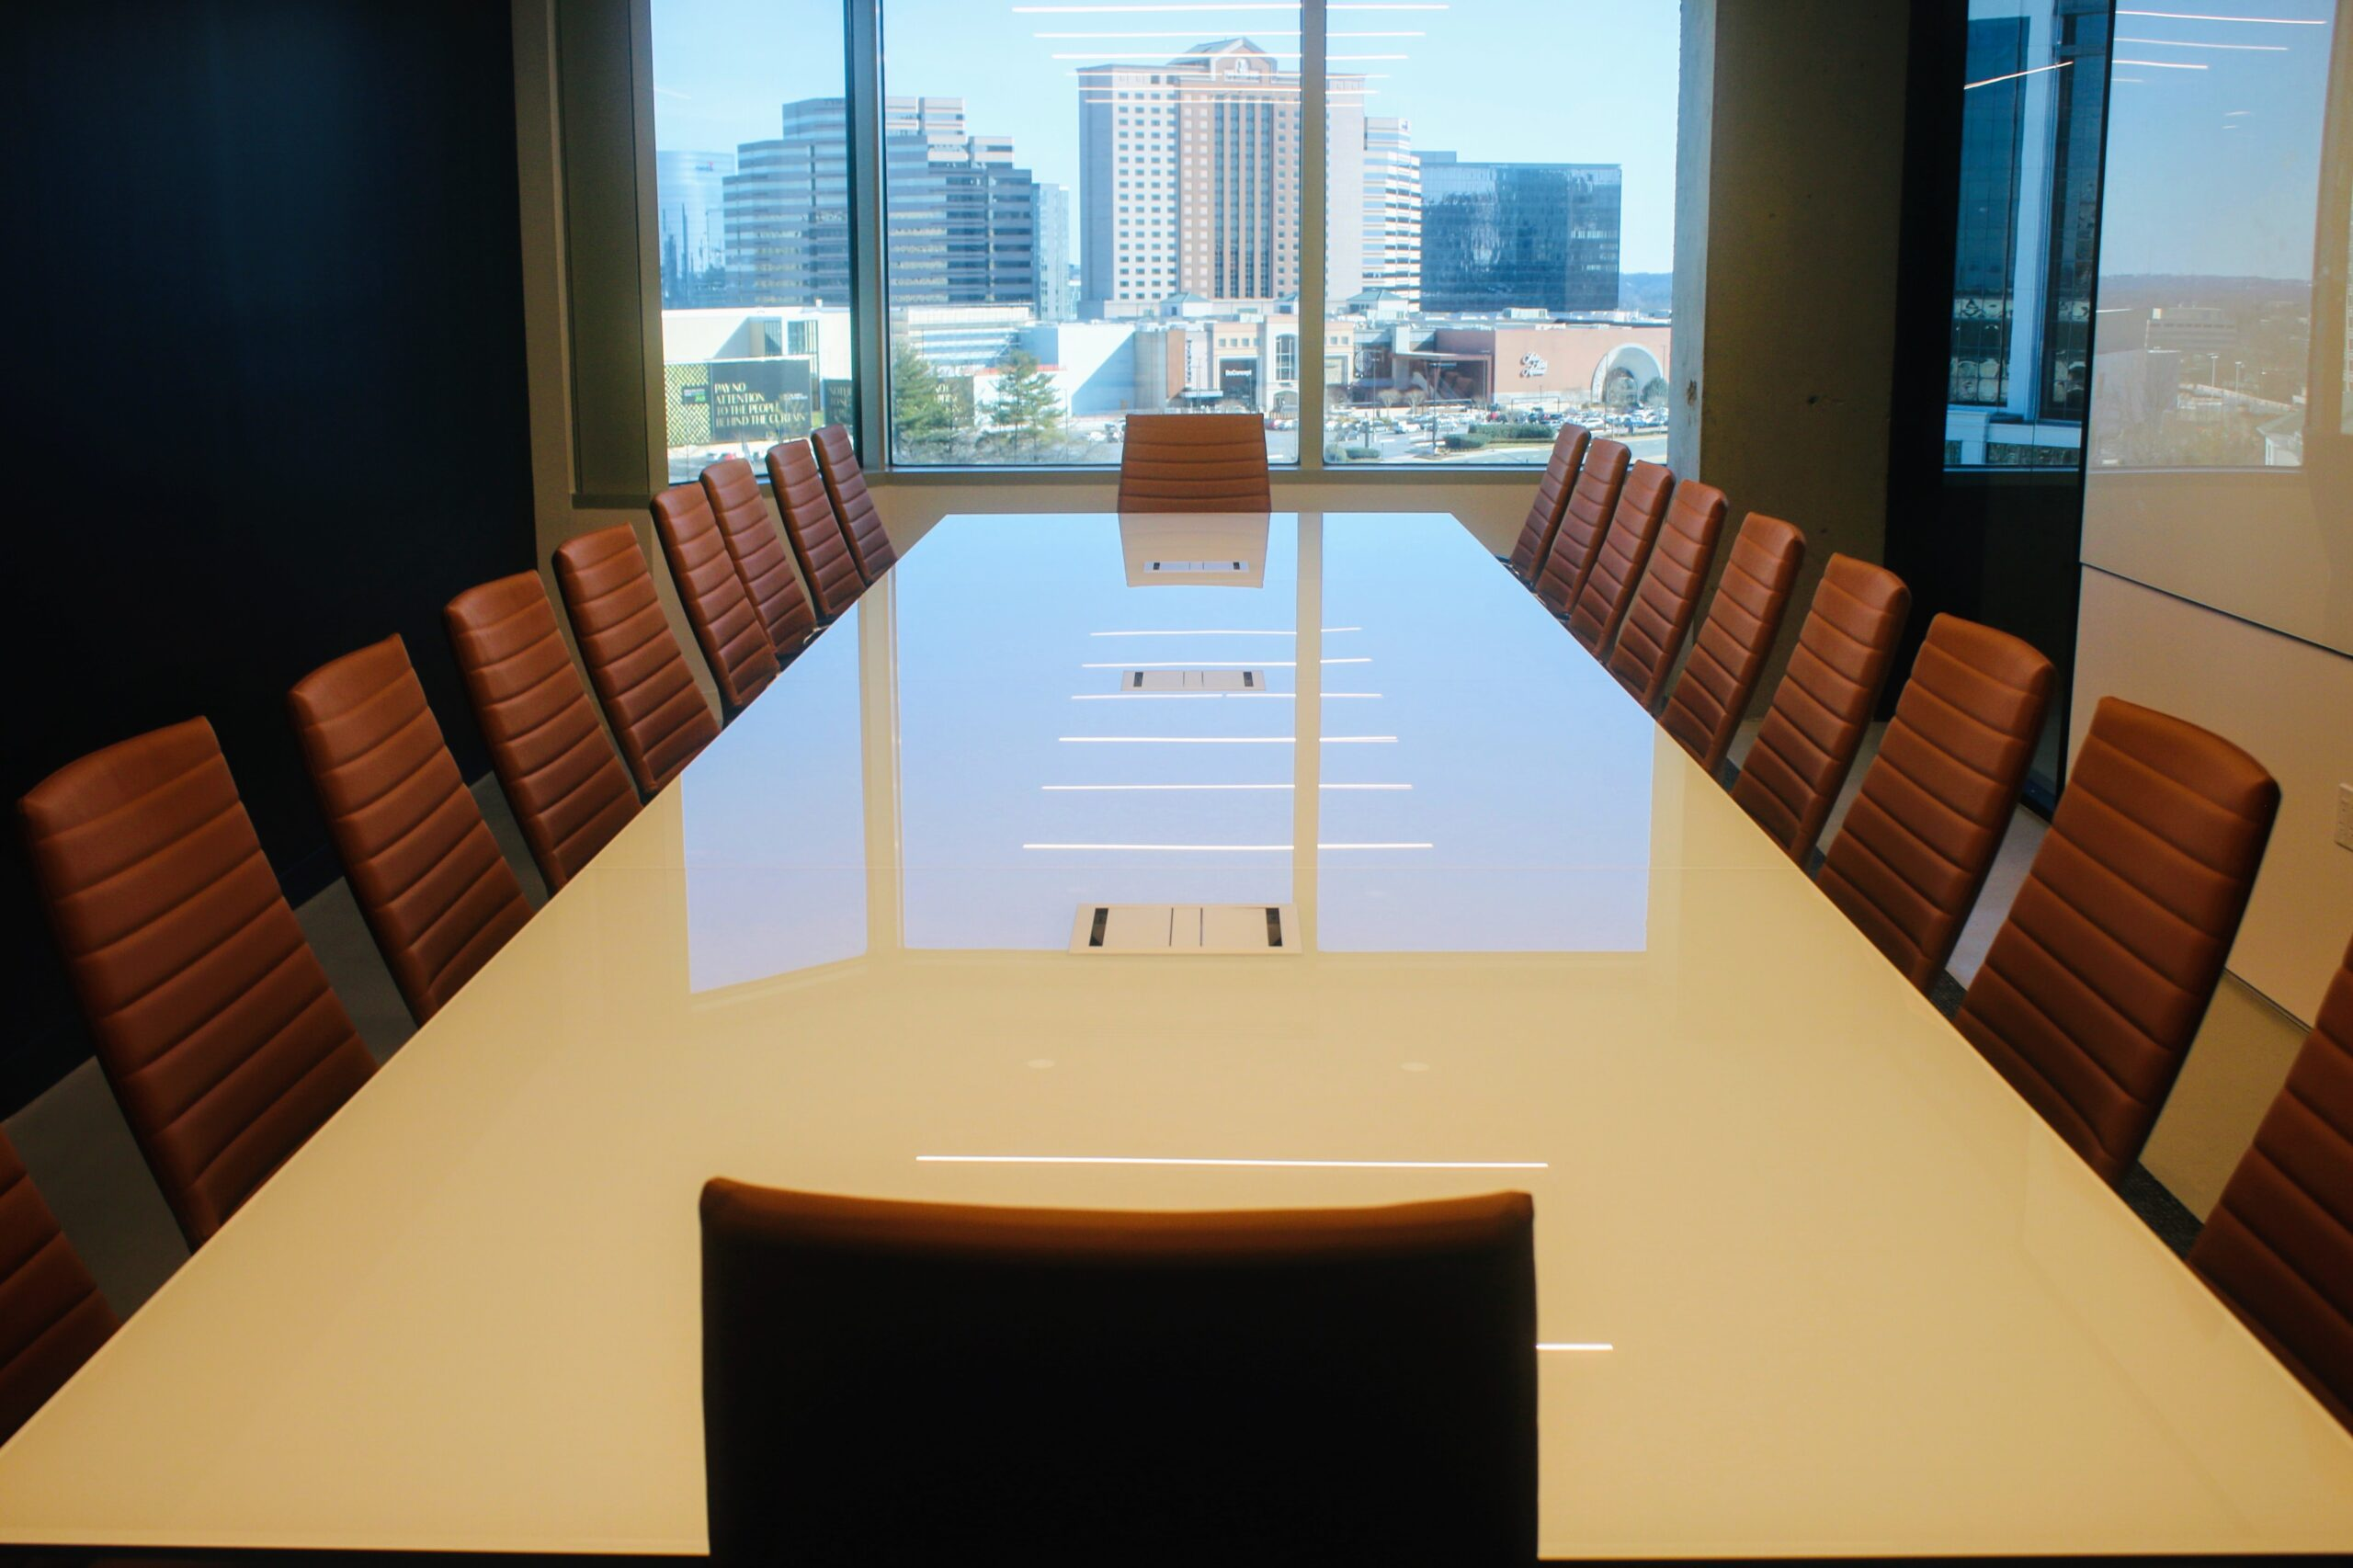 Conference table with window behind